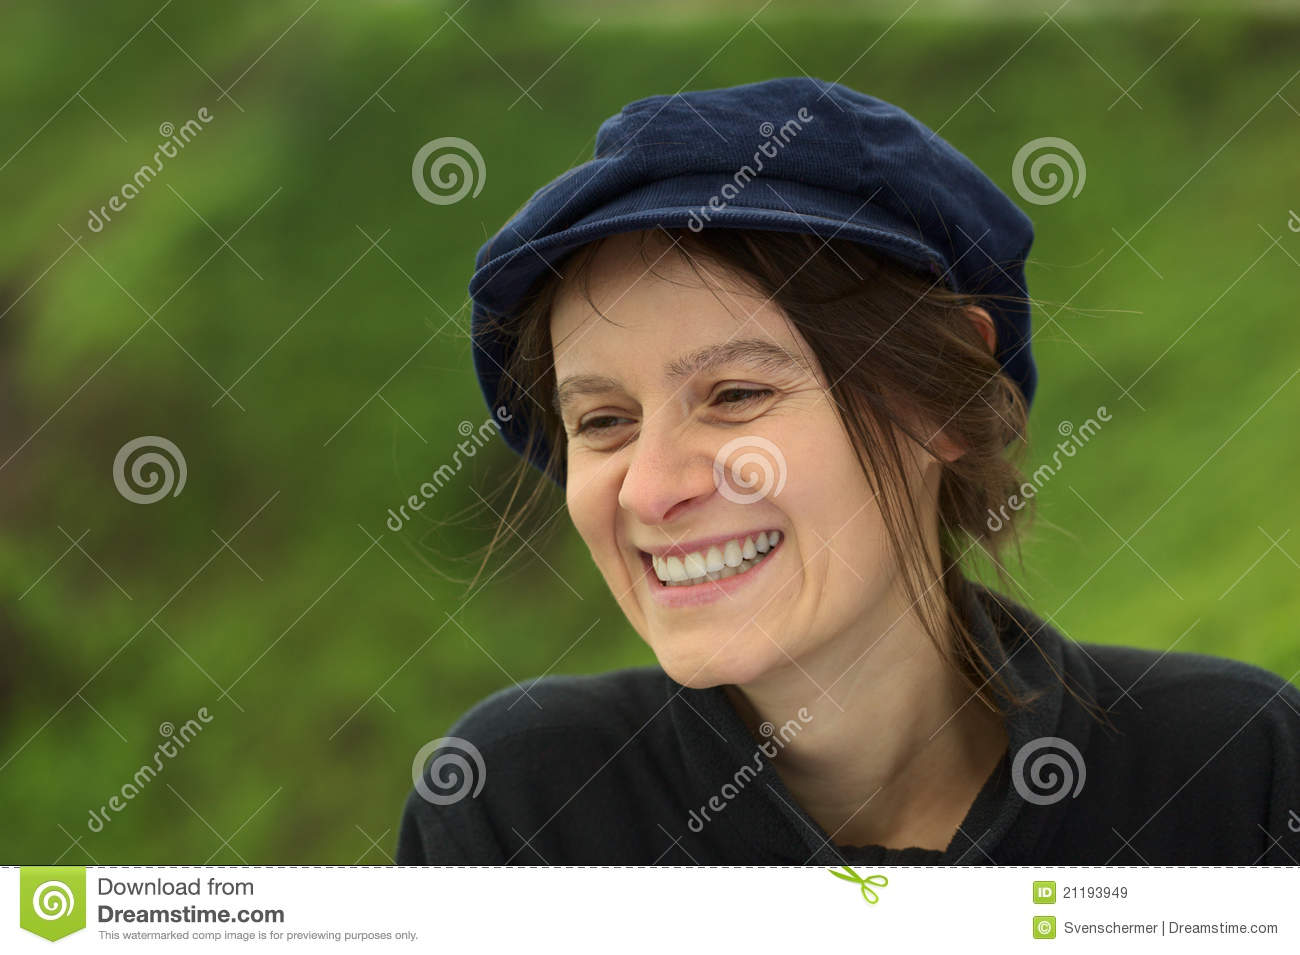 Smiling Young Woman in Park